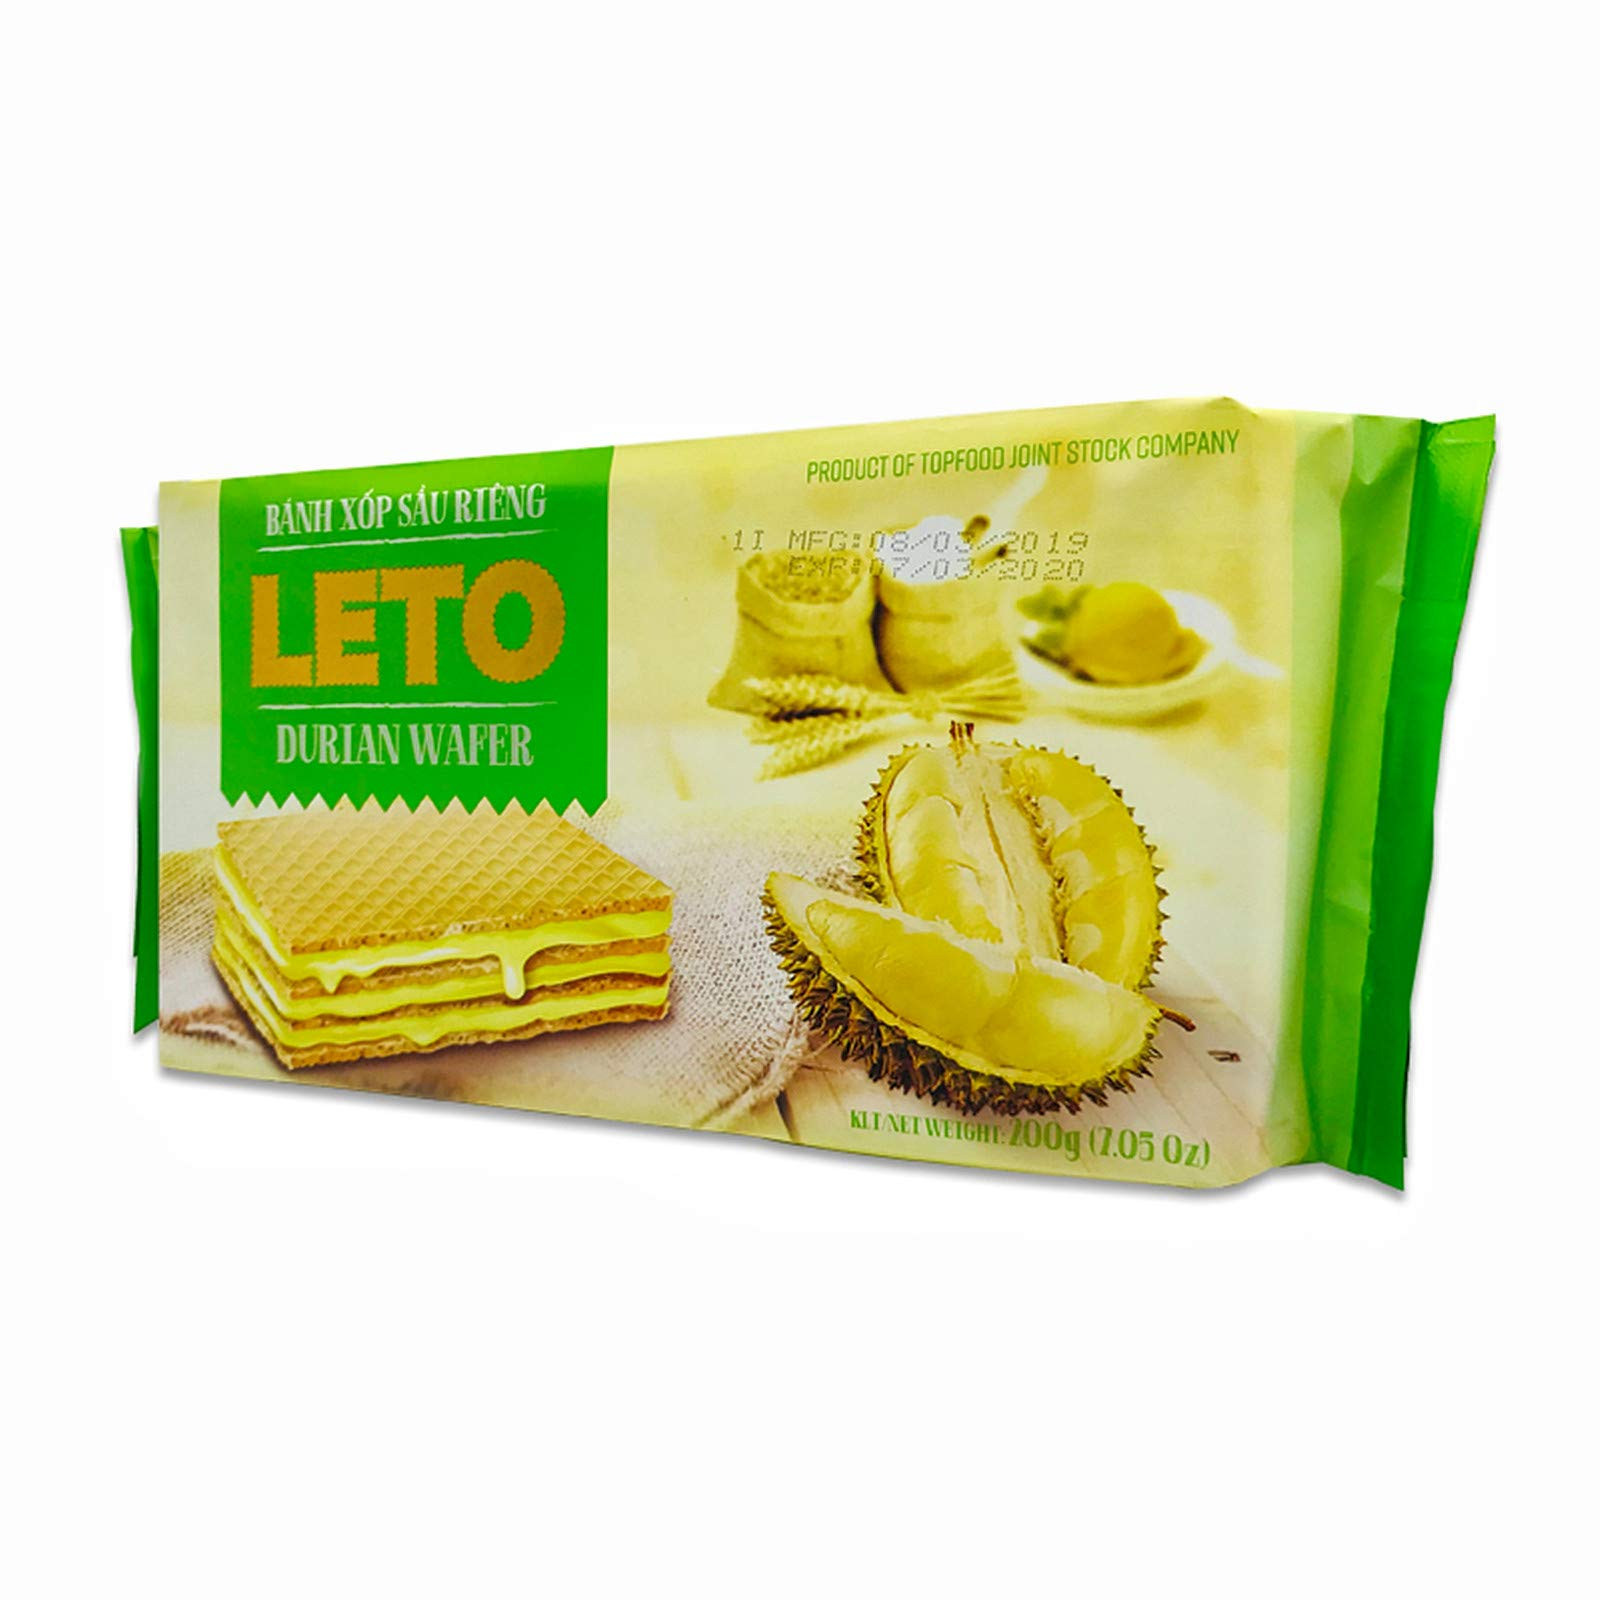 Wafer Cookies, Durian Flavored Biscuits, Ideal Dessert, Snack, Pastry, School Lunches, Family Gathering, Party Snack, Work Lunch, 7.1 oz (pack of 1)